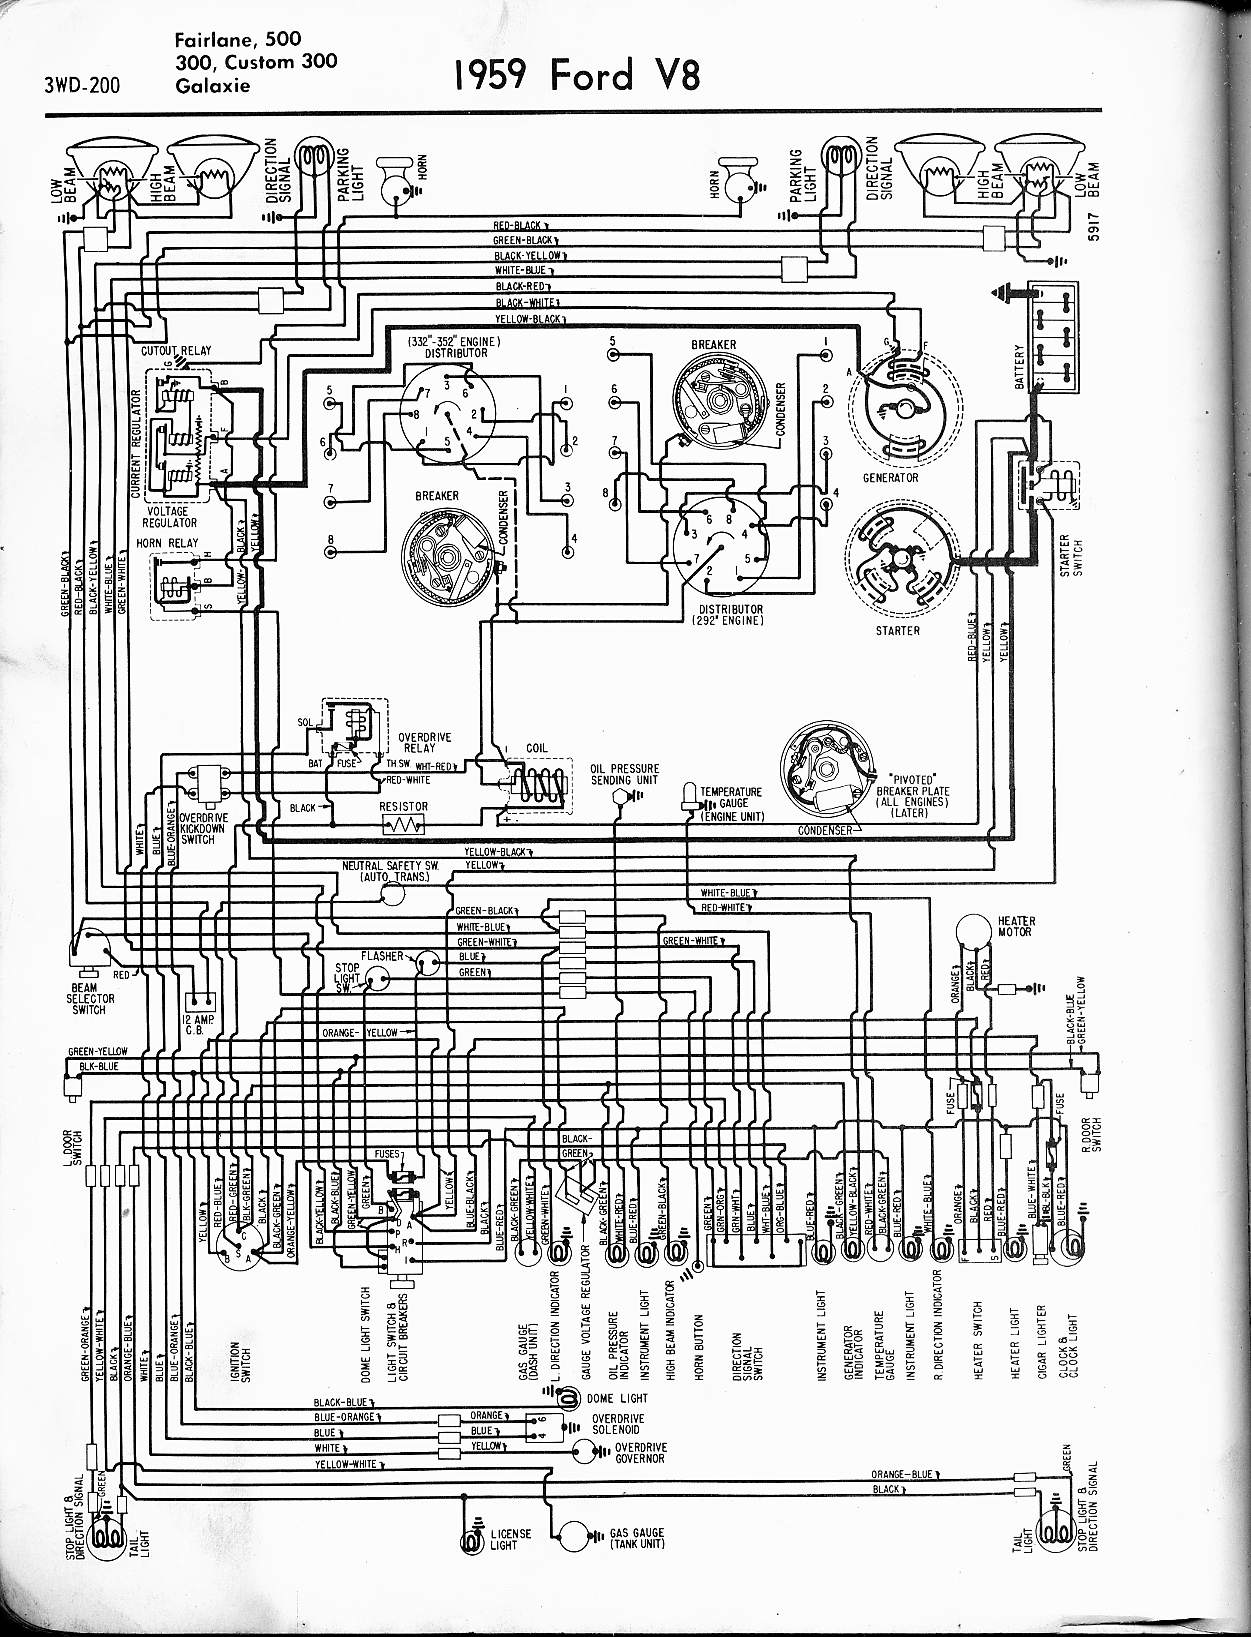 57 65 Ford Wiring Diagrams Focus 1959 V8 Fairlane 500 300 Custom